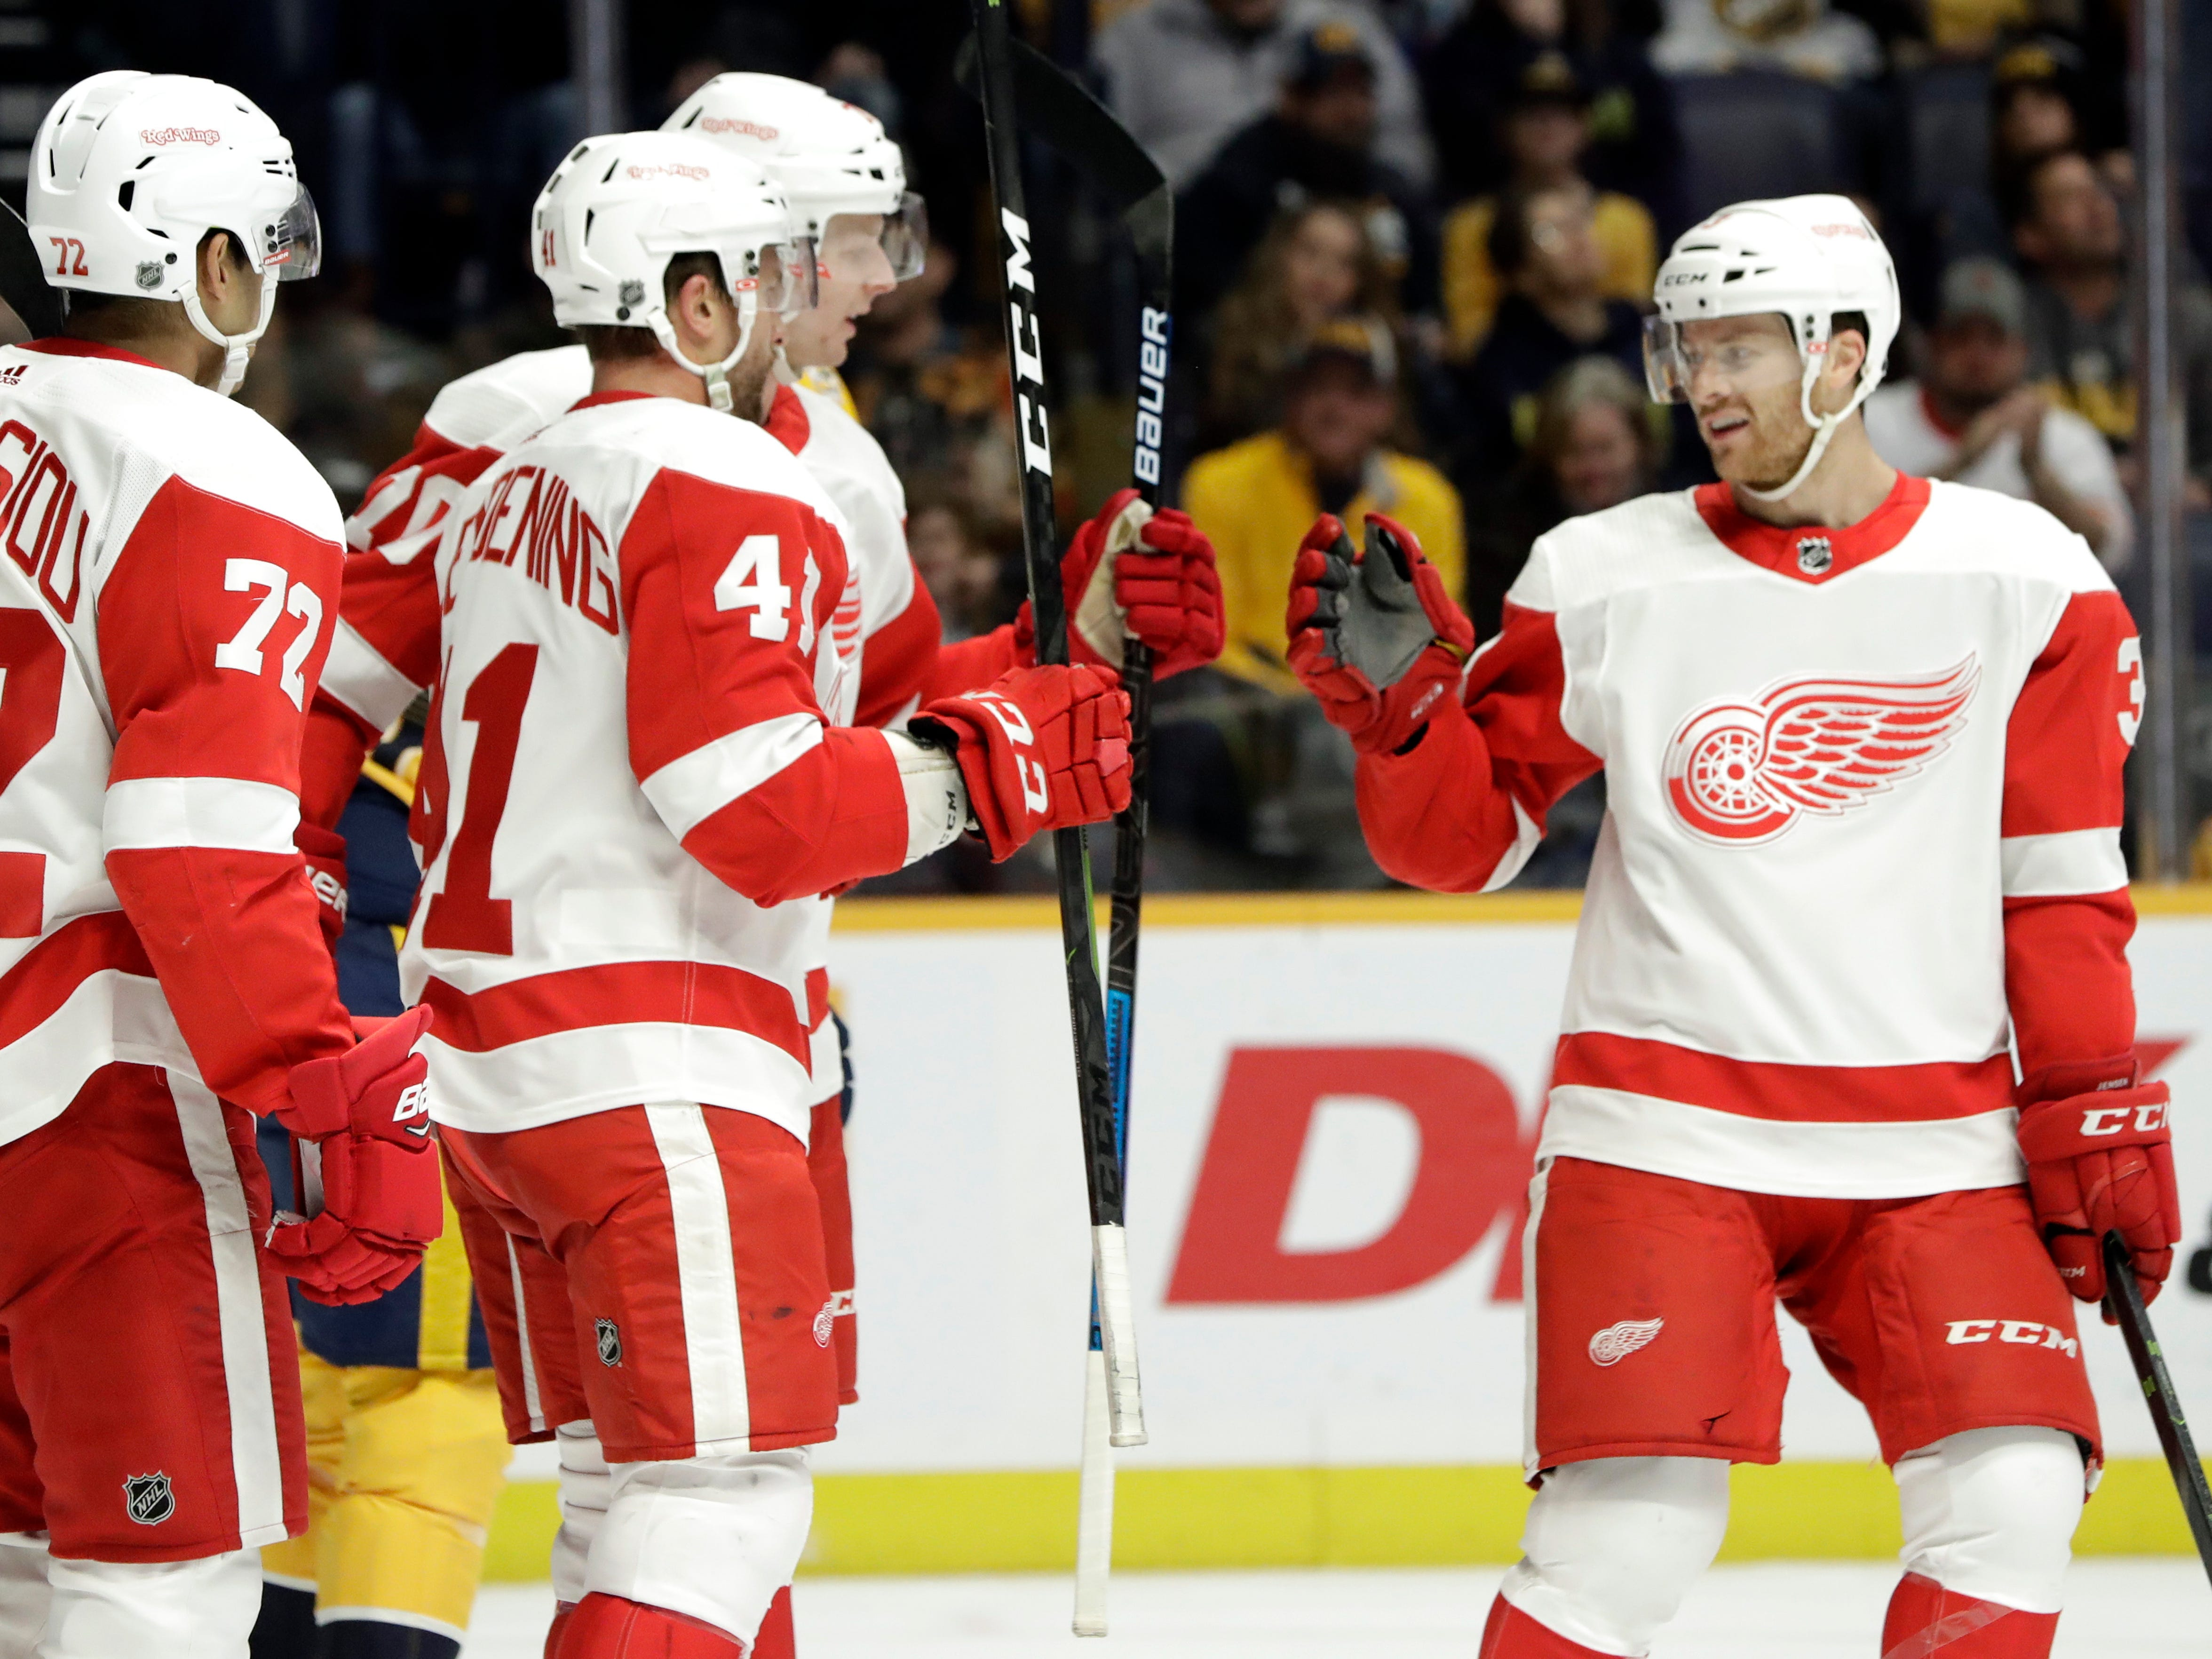 Detroit Red Wings center Luke Glendening (41) celebrates with Nick Jensen (3) and Andreas Athanasiou (72) after Glendening scored a goal against the Nashville Predators during the first period.